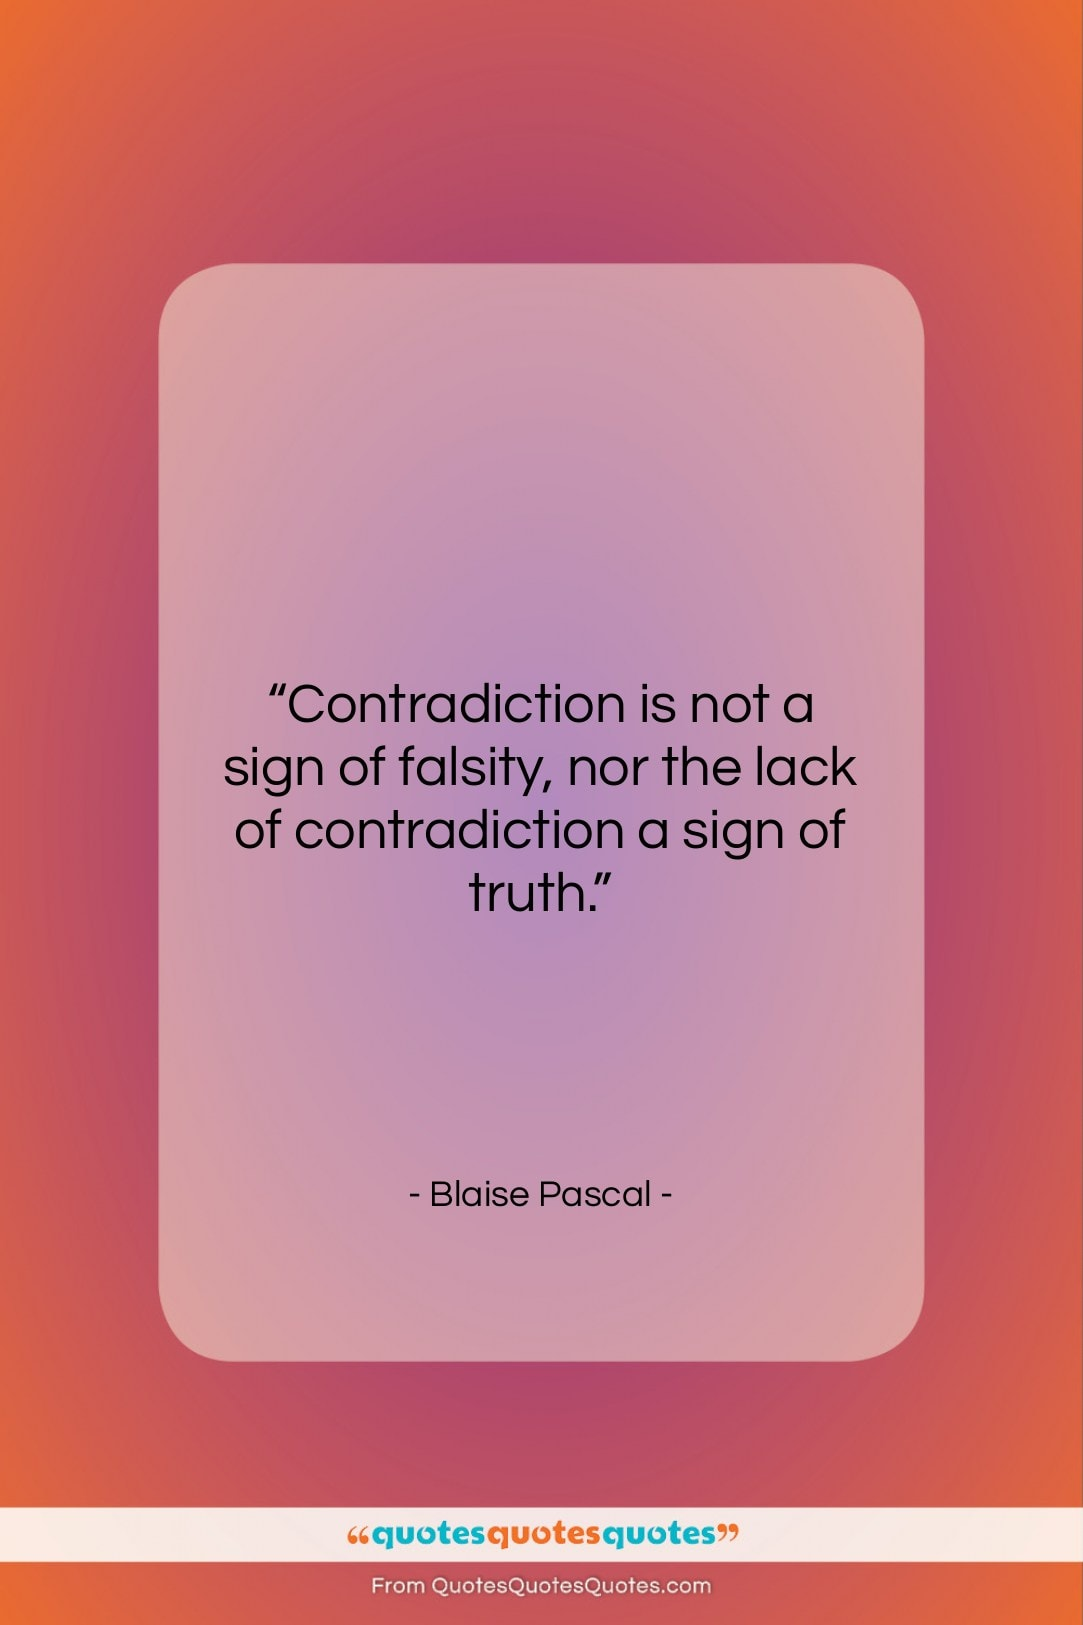 """Blaise Pascal quote: """"Contradiction is not a sign of falsity,…""""- at QuotesQuotesQuotes.com"""